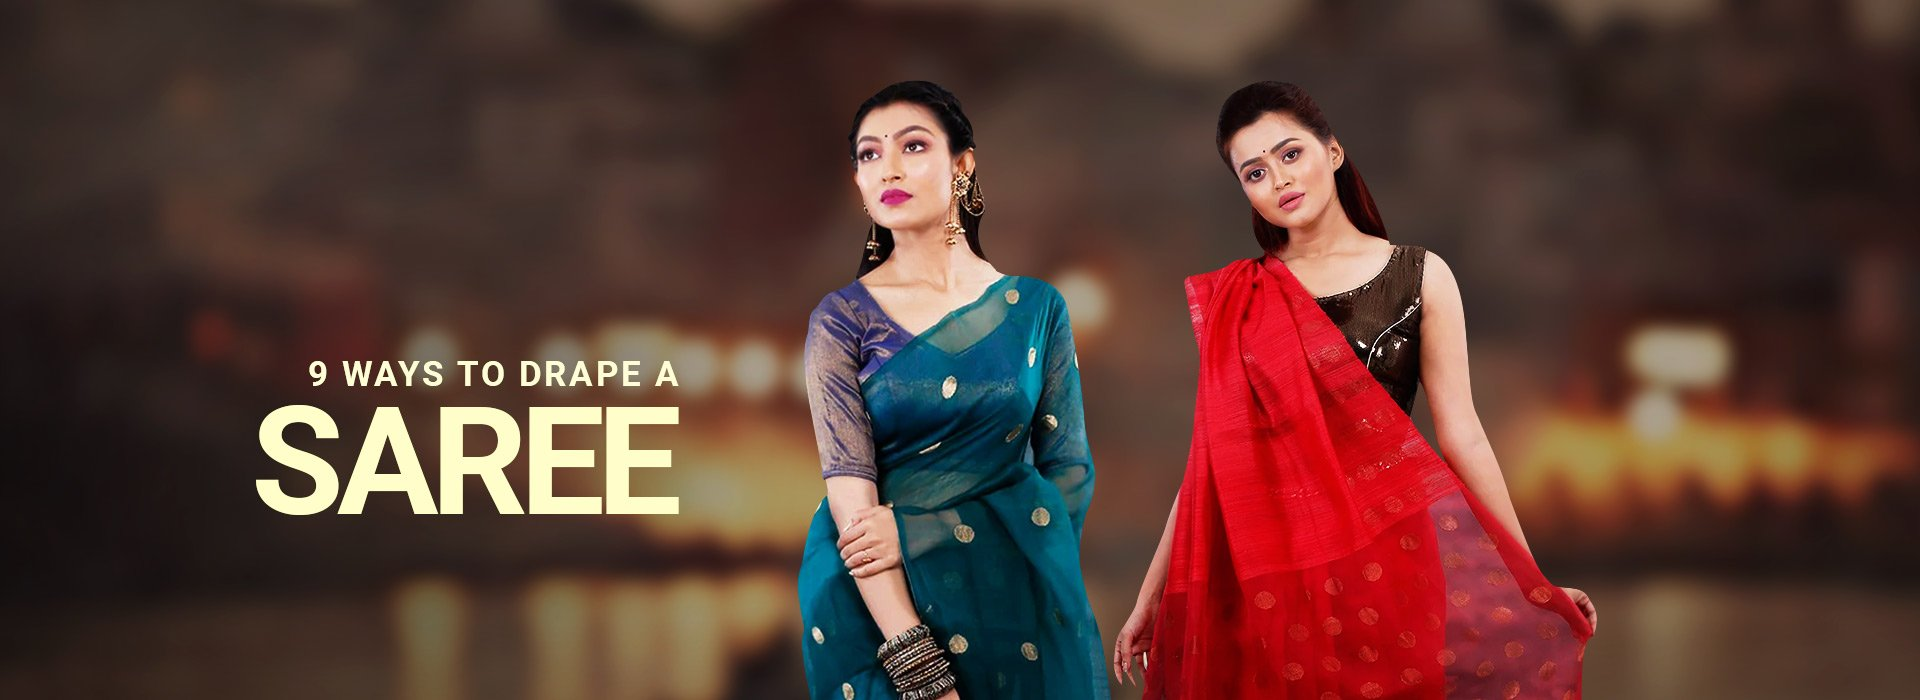 9 Ways to Drape a Saree